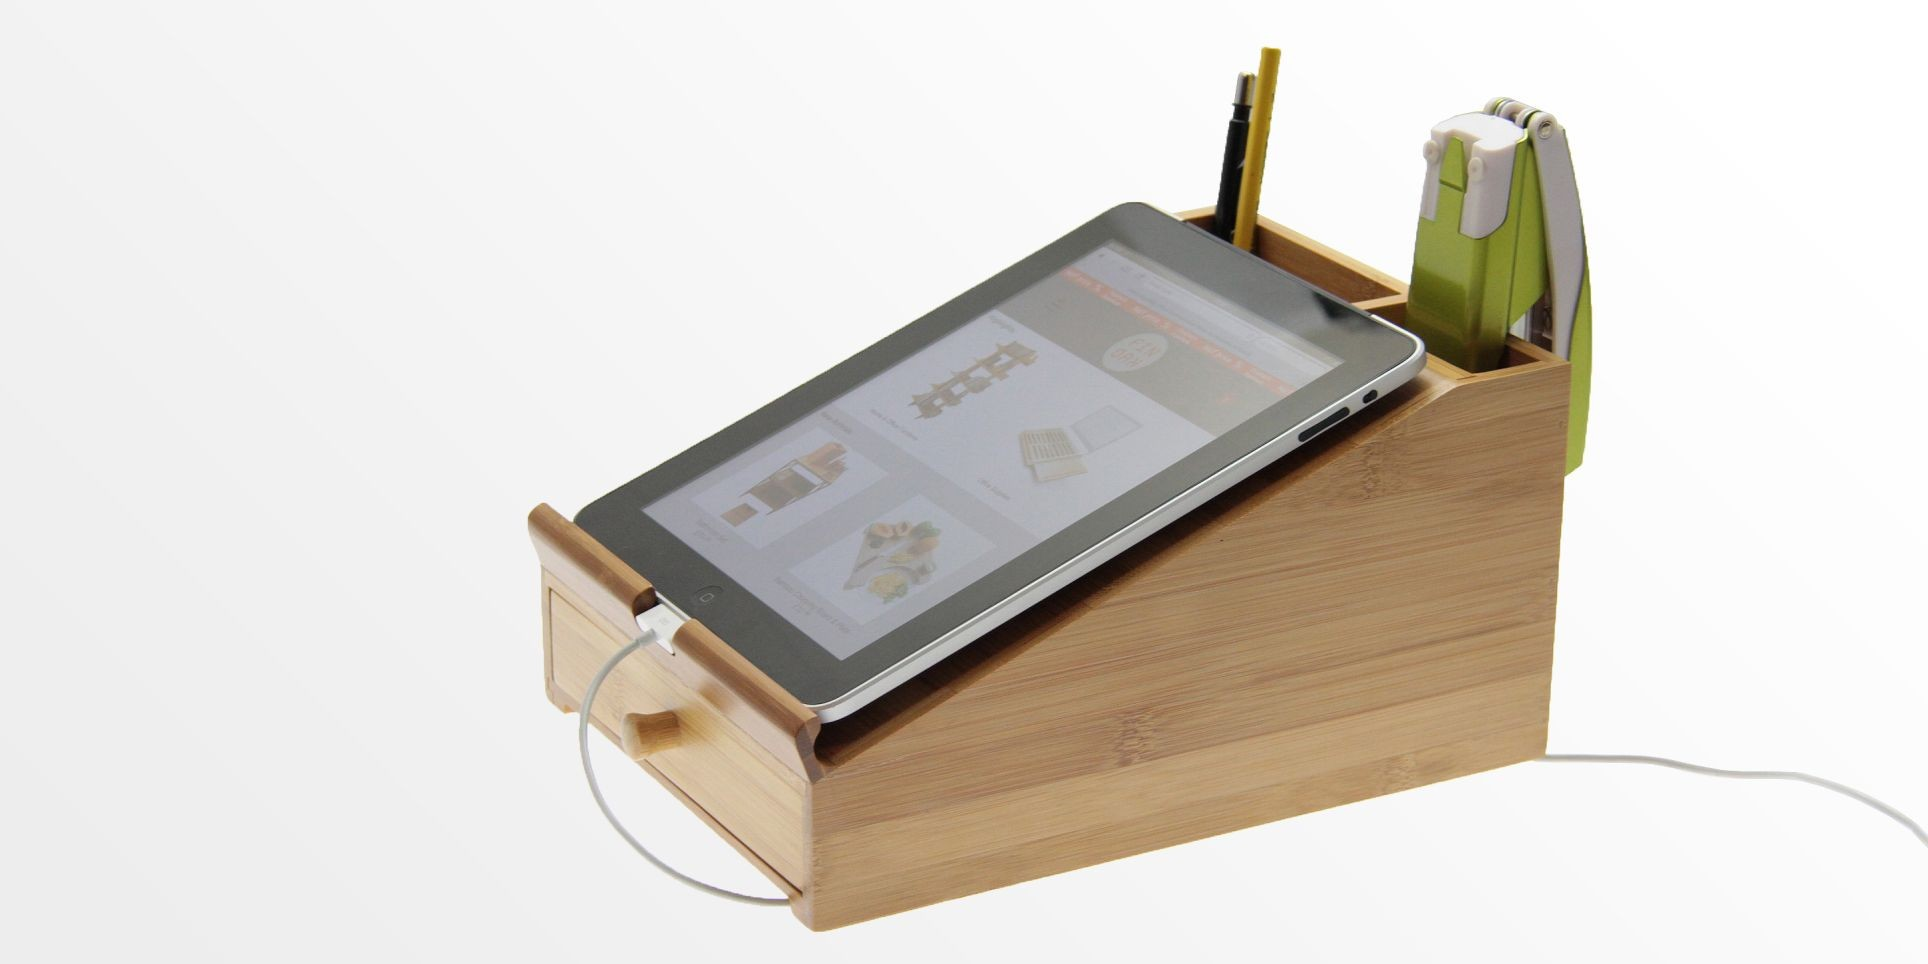 Ipad Stand L Desk Tidy Bamboo Desk Organiser Office